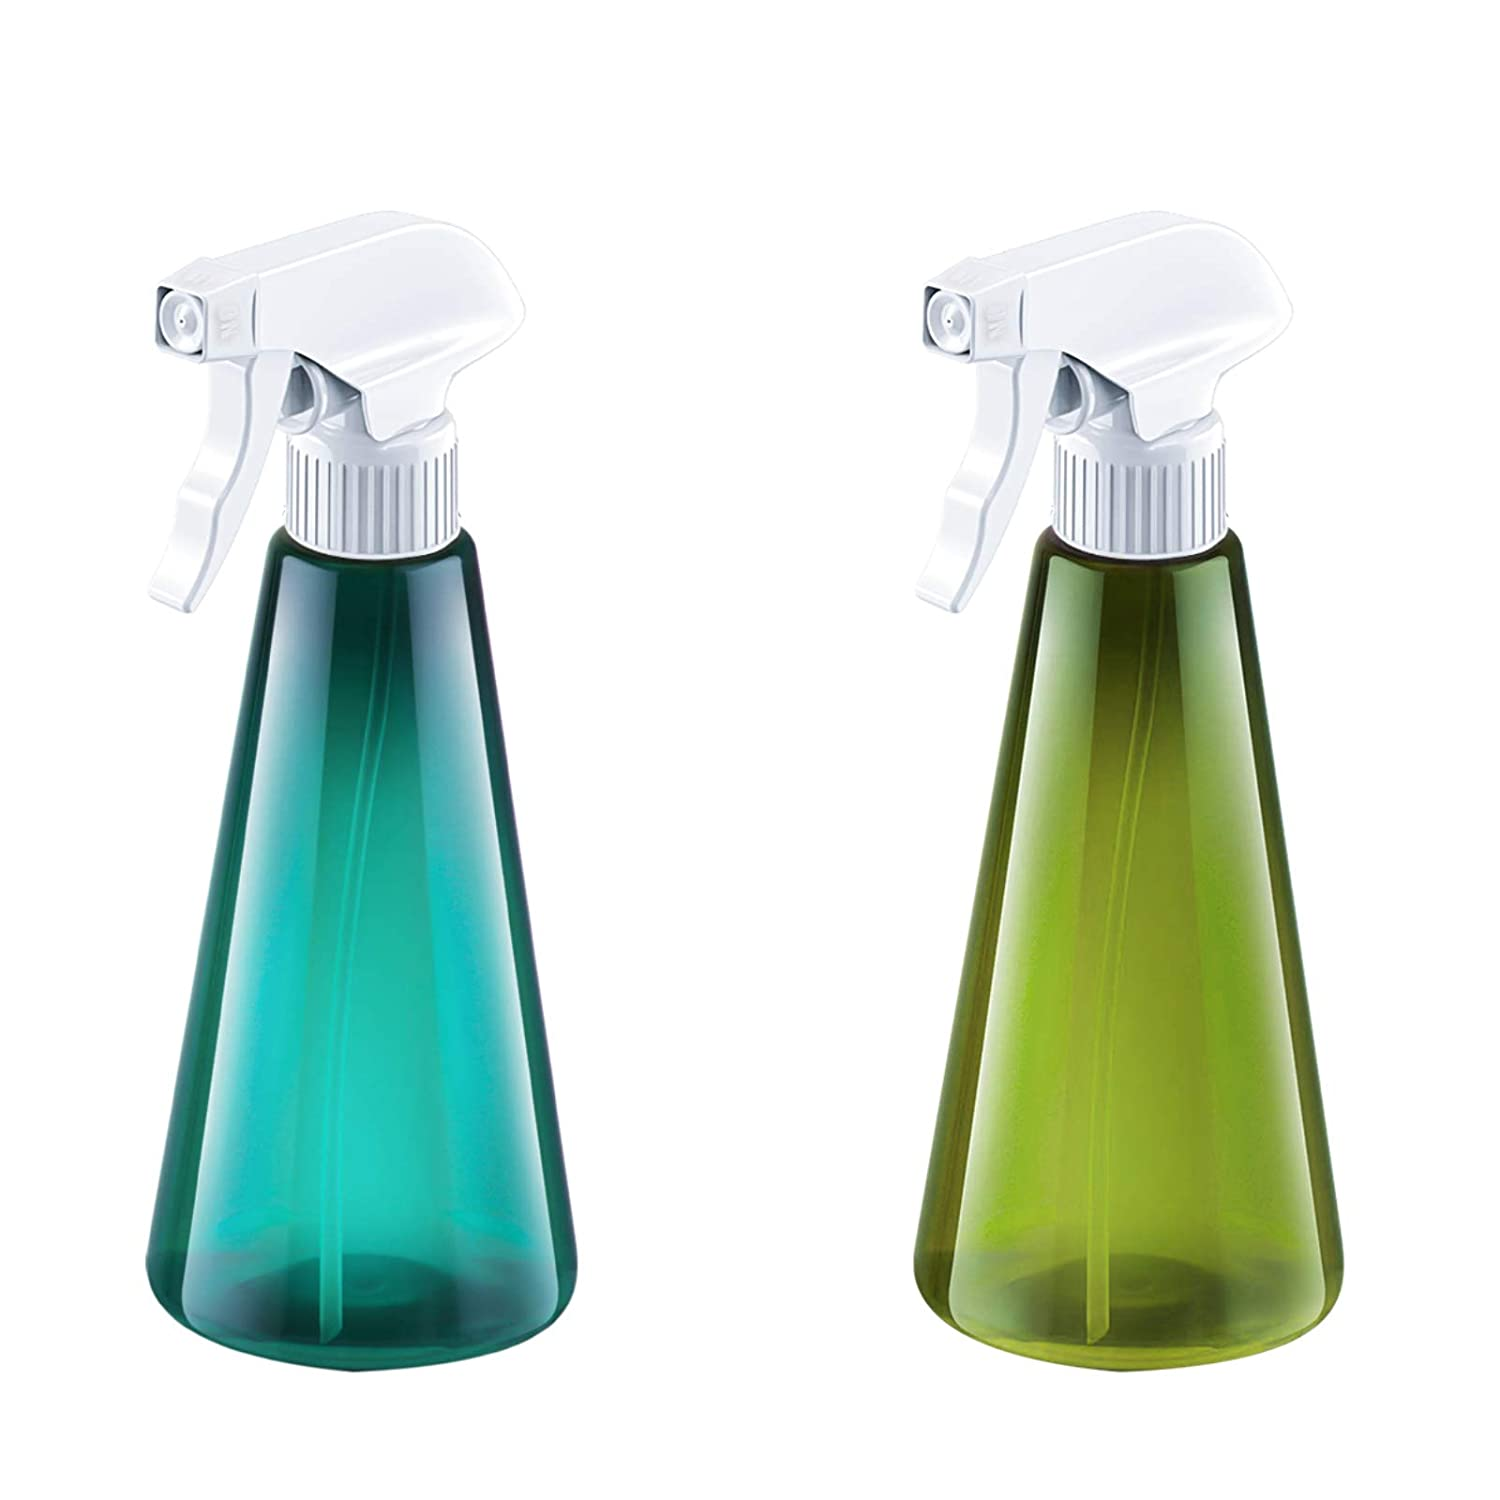 Plant Mister Spray Bottle, Mist Spray Bottle for Cleaning Solution Gardening Trigger Water Empty Sprayer 16oz Refillable Container,Durable Trigger Sprayer w/Mist and Stream Settings (2 Pack)